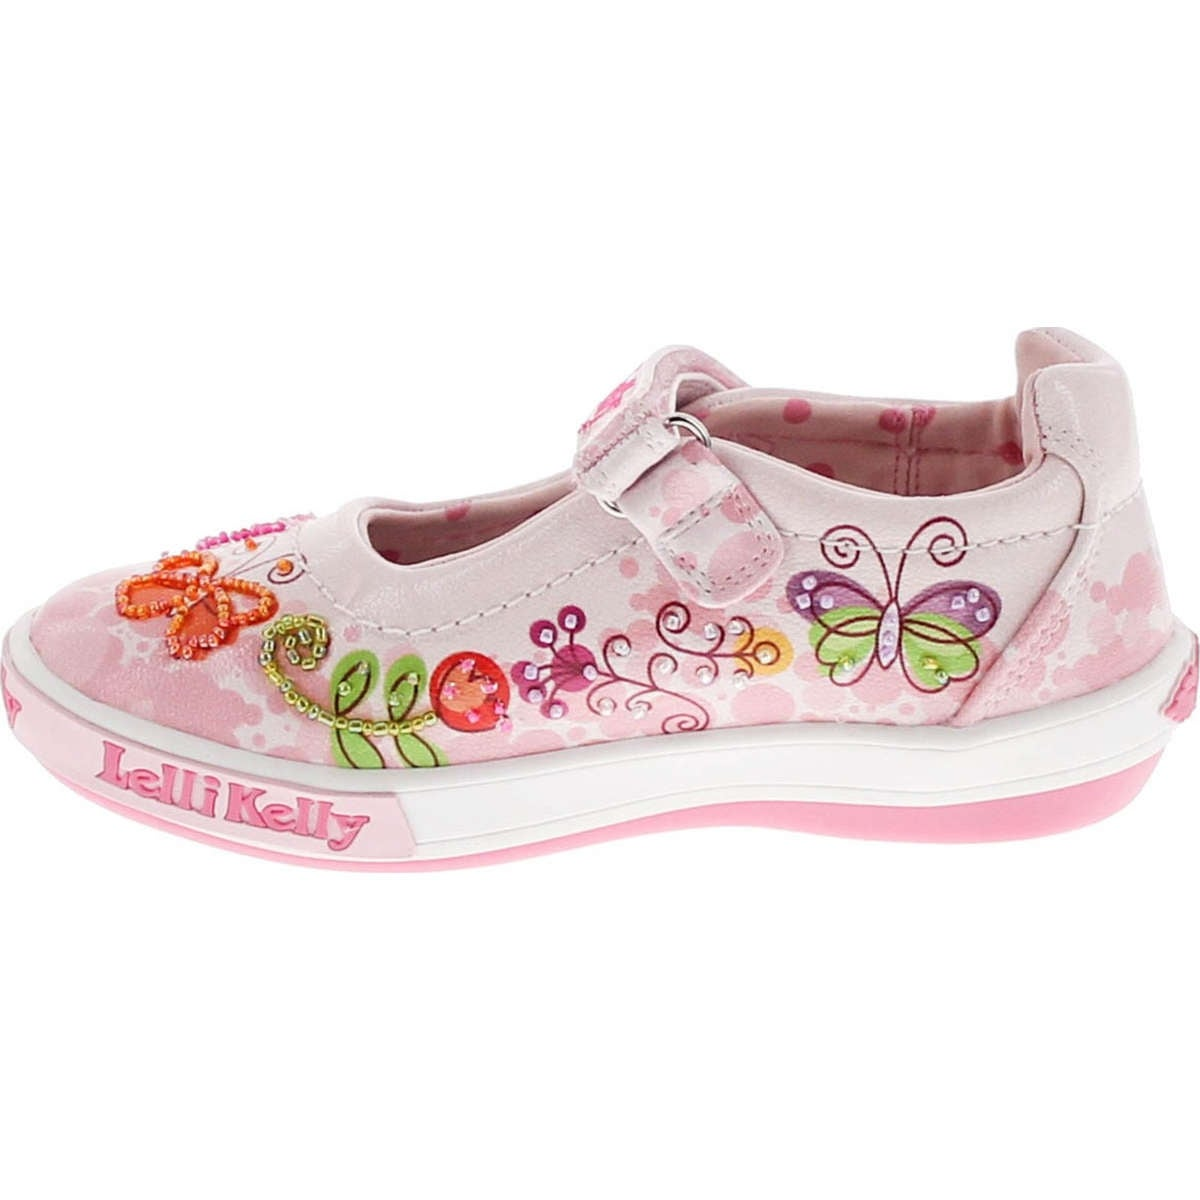 8cde4c7a Shop Lelli Kelly Kids Girls Lk1115 Fashion Mary Jane Flats Shoes - Free  Shipping Today - Overstock - 14809752